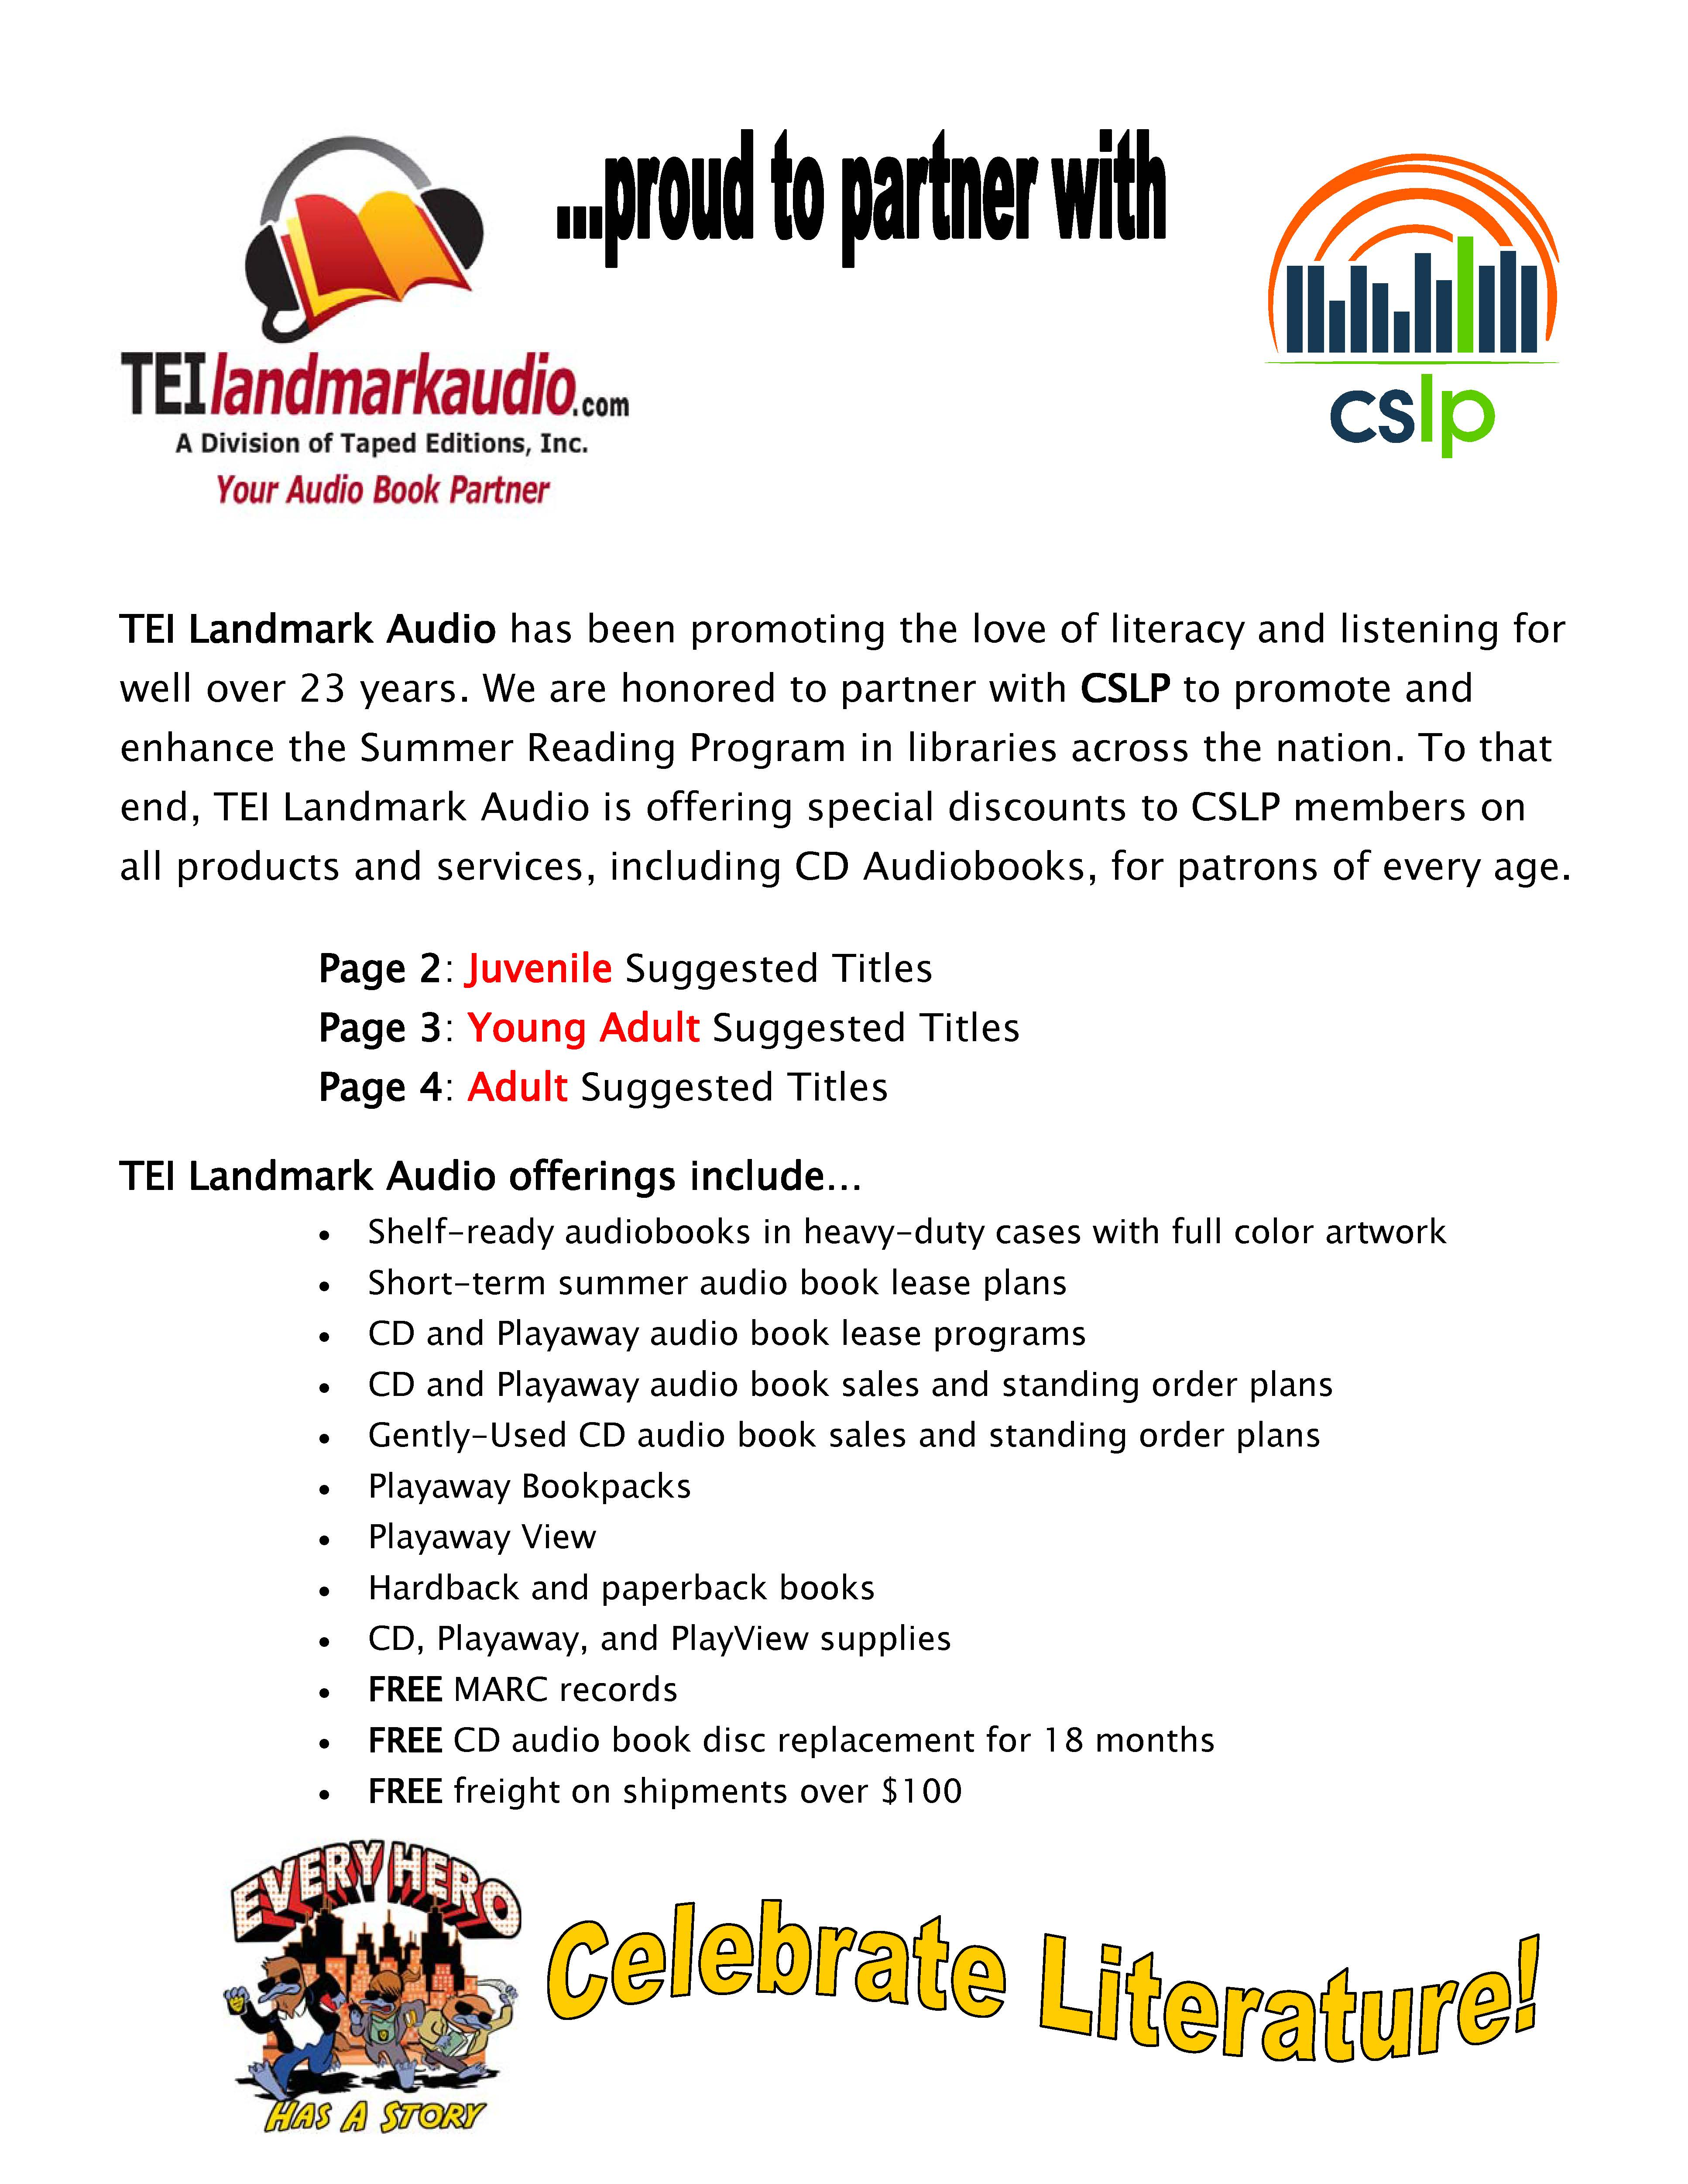 TEI-LandmarkAudioCSLP 2015(4 pages)_Page_1